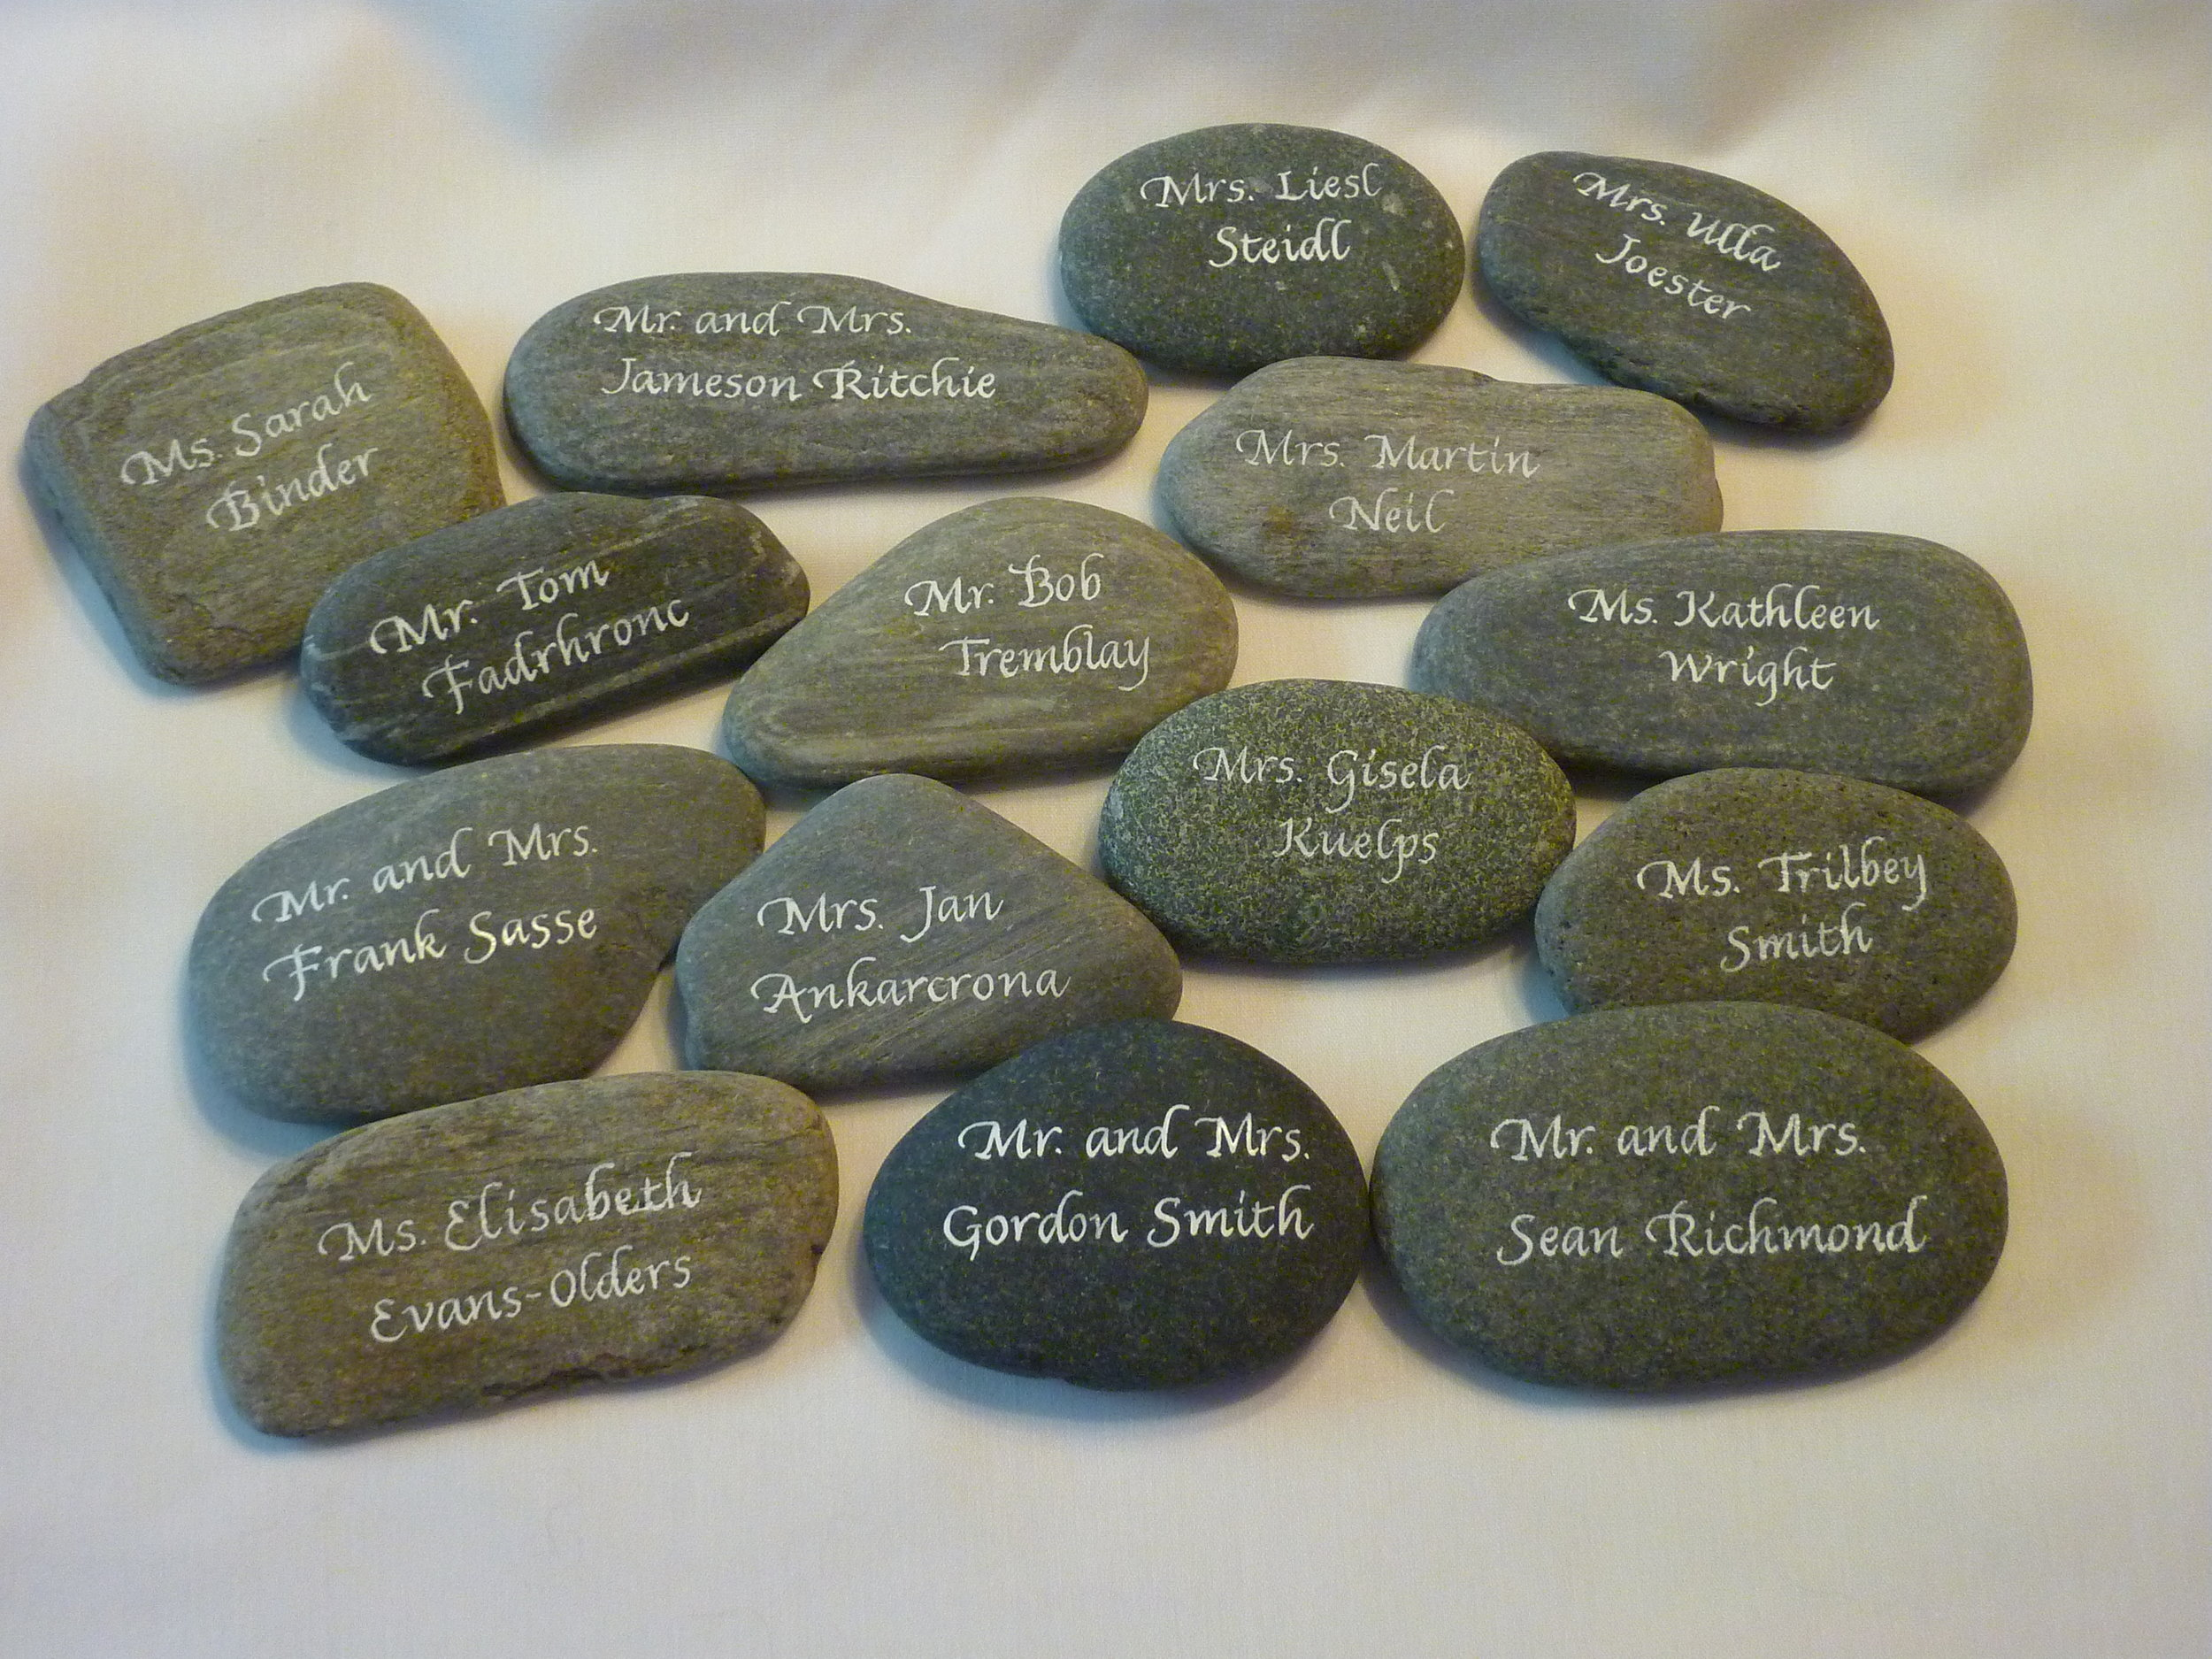 Rocks for website.JPG